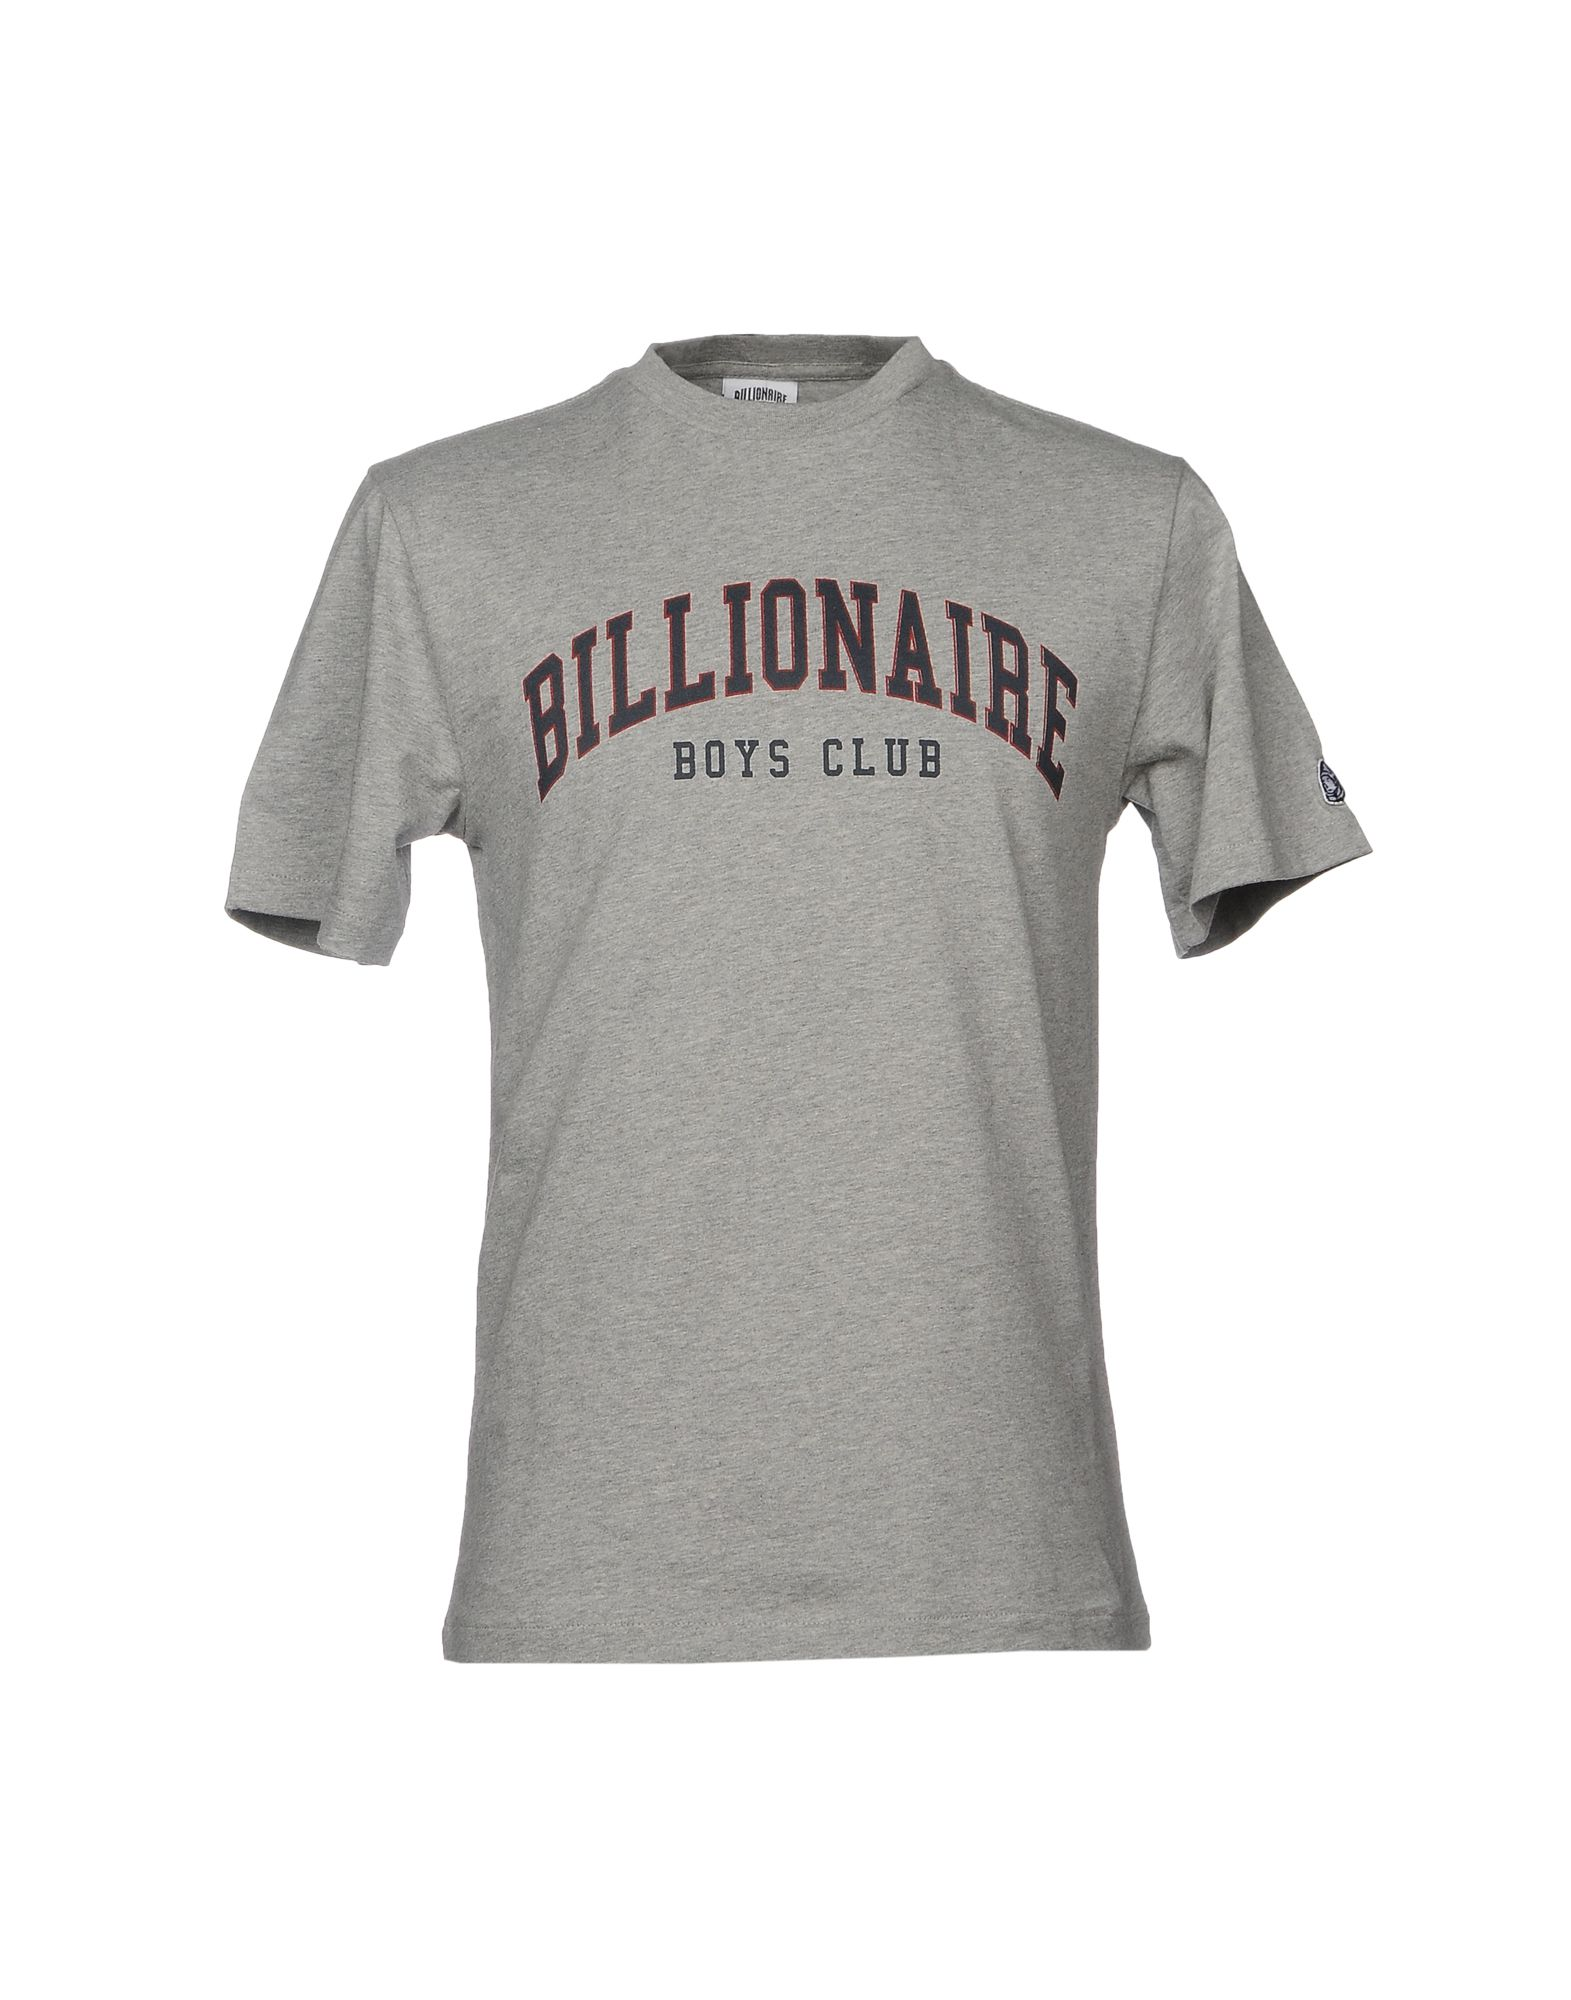 BILLIONAIRE BOYS CLUB Tshirts